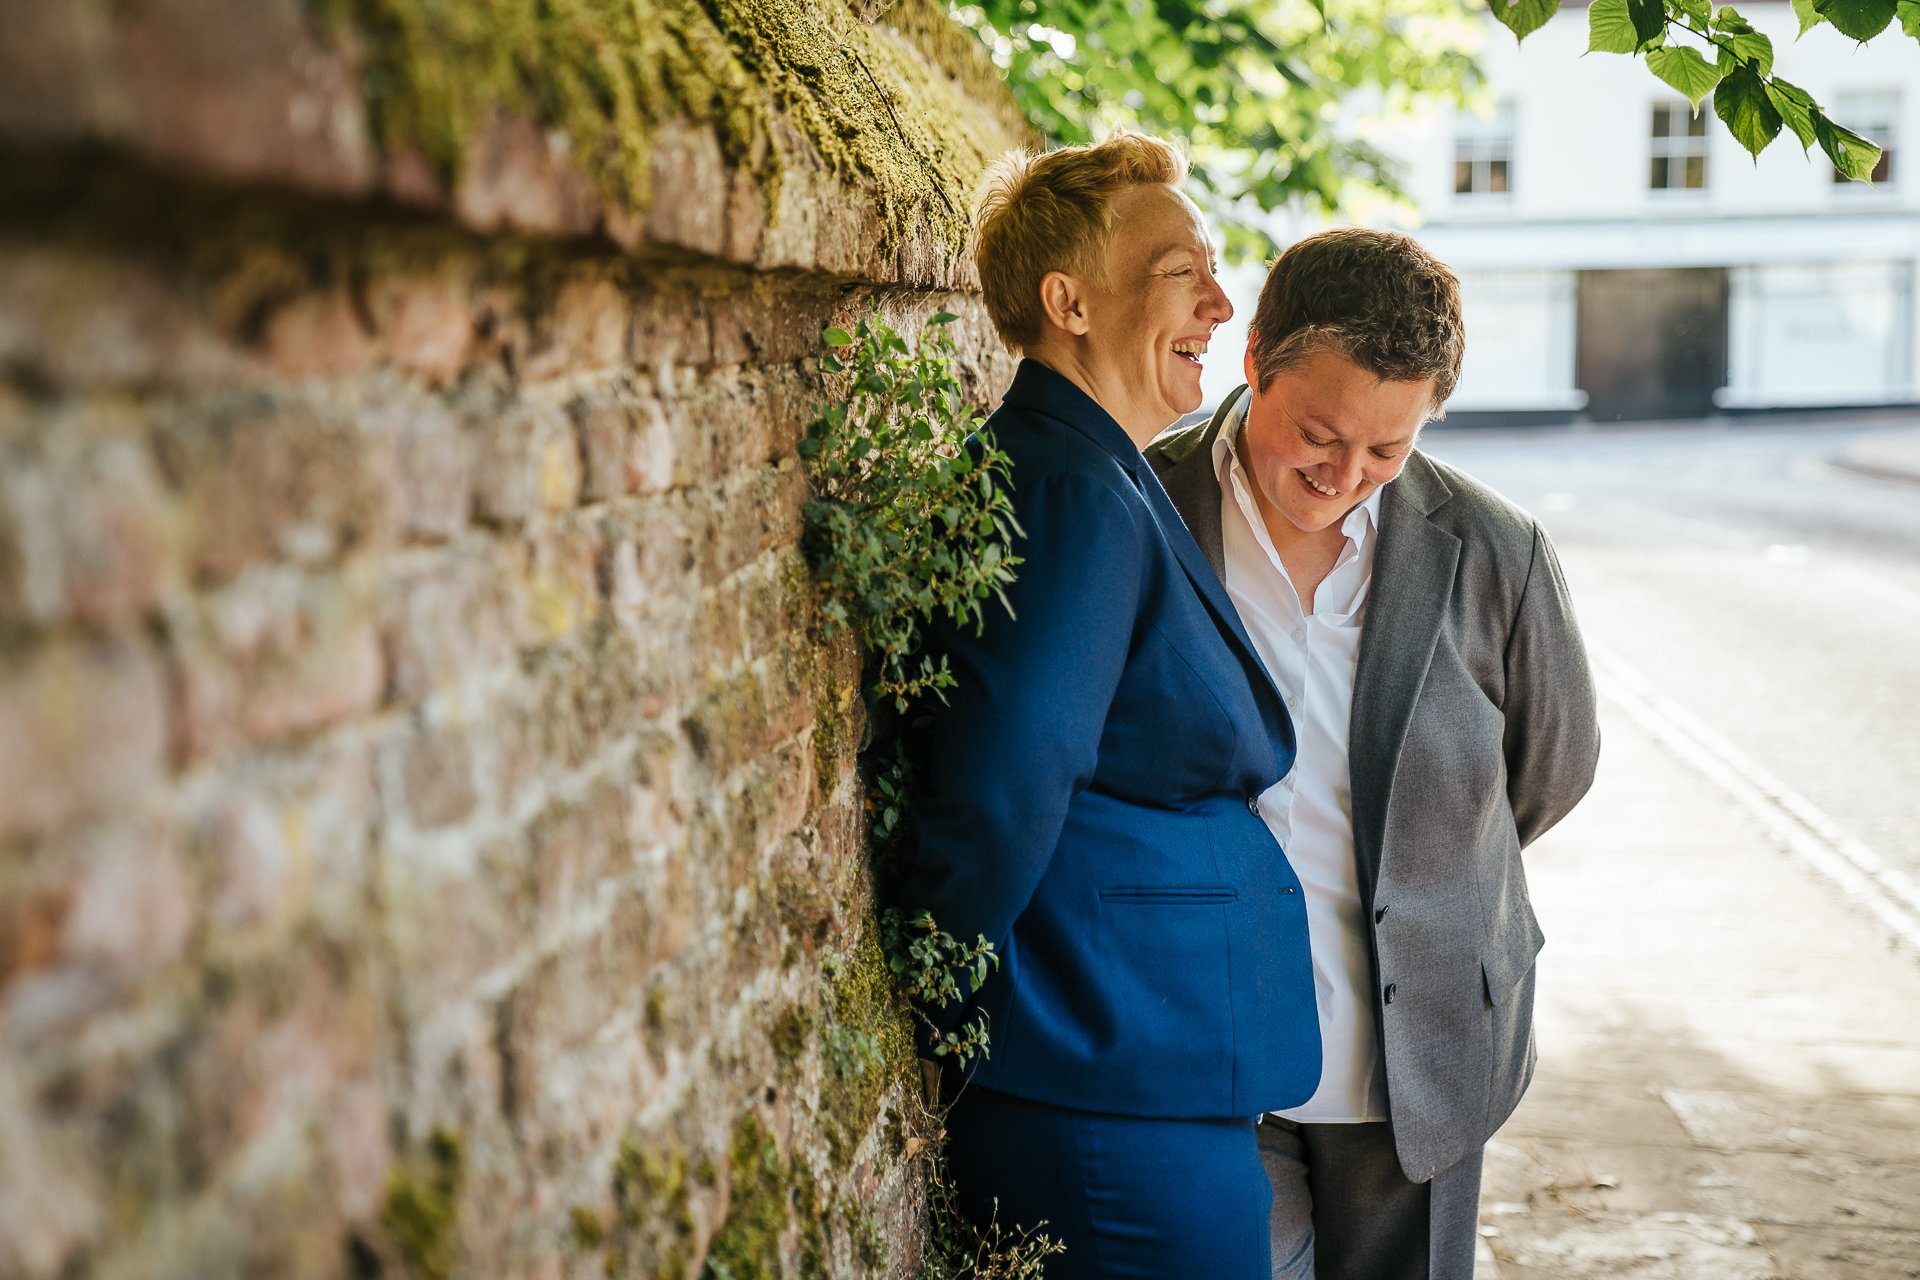 Couple laughing together against wall after their wedding ceremony